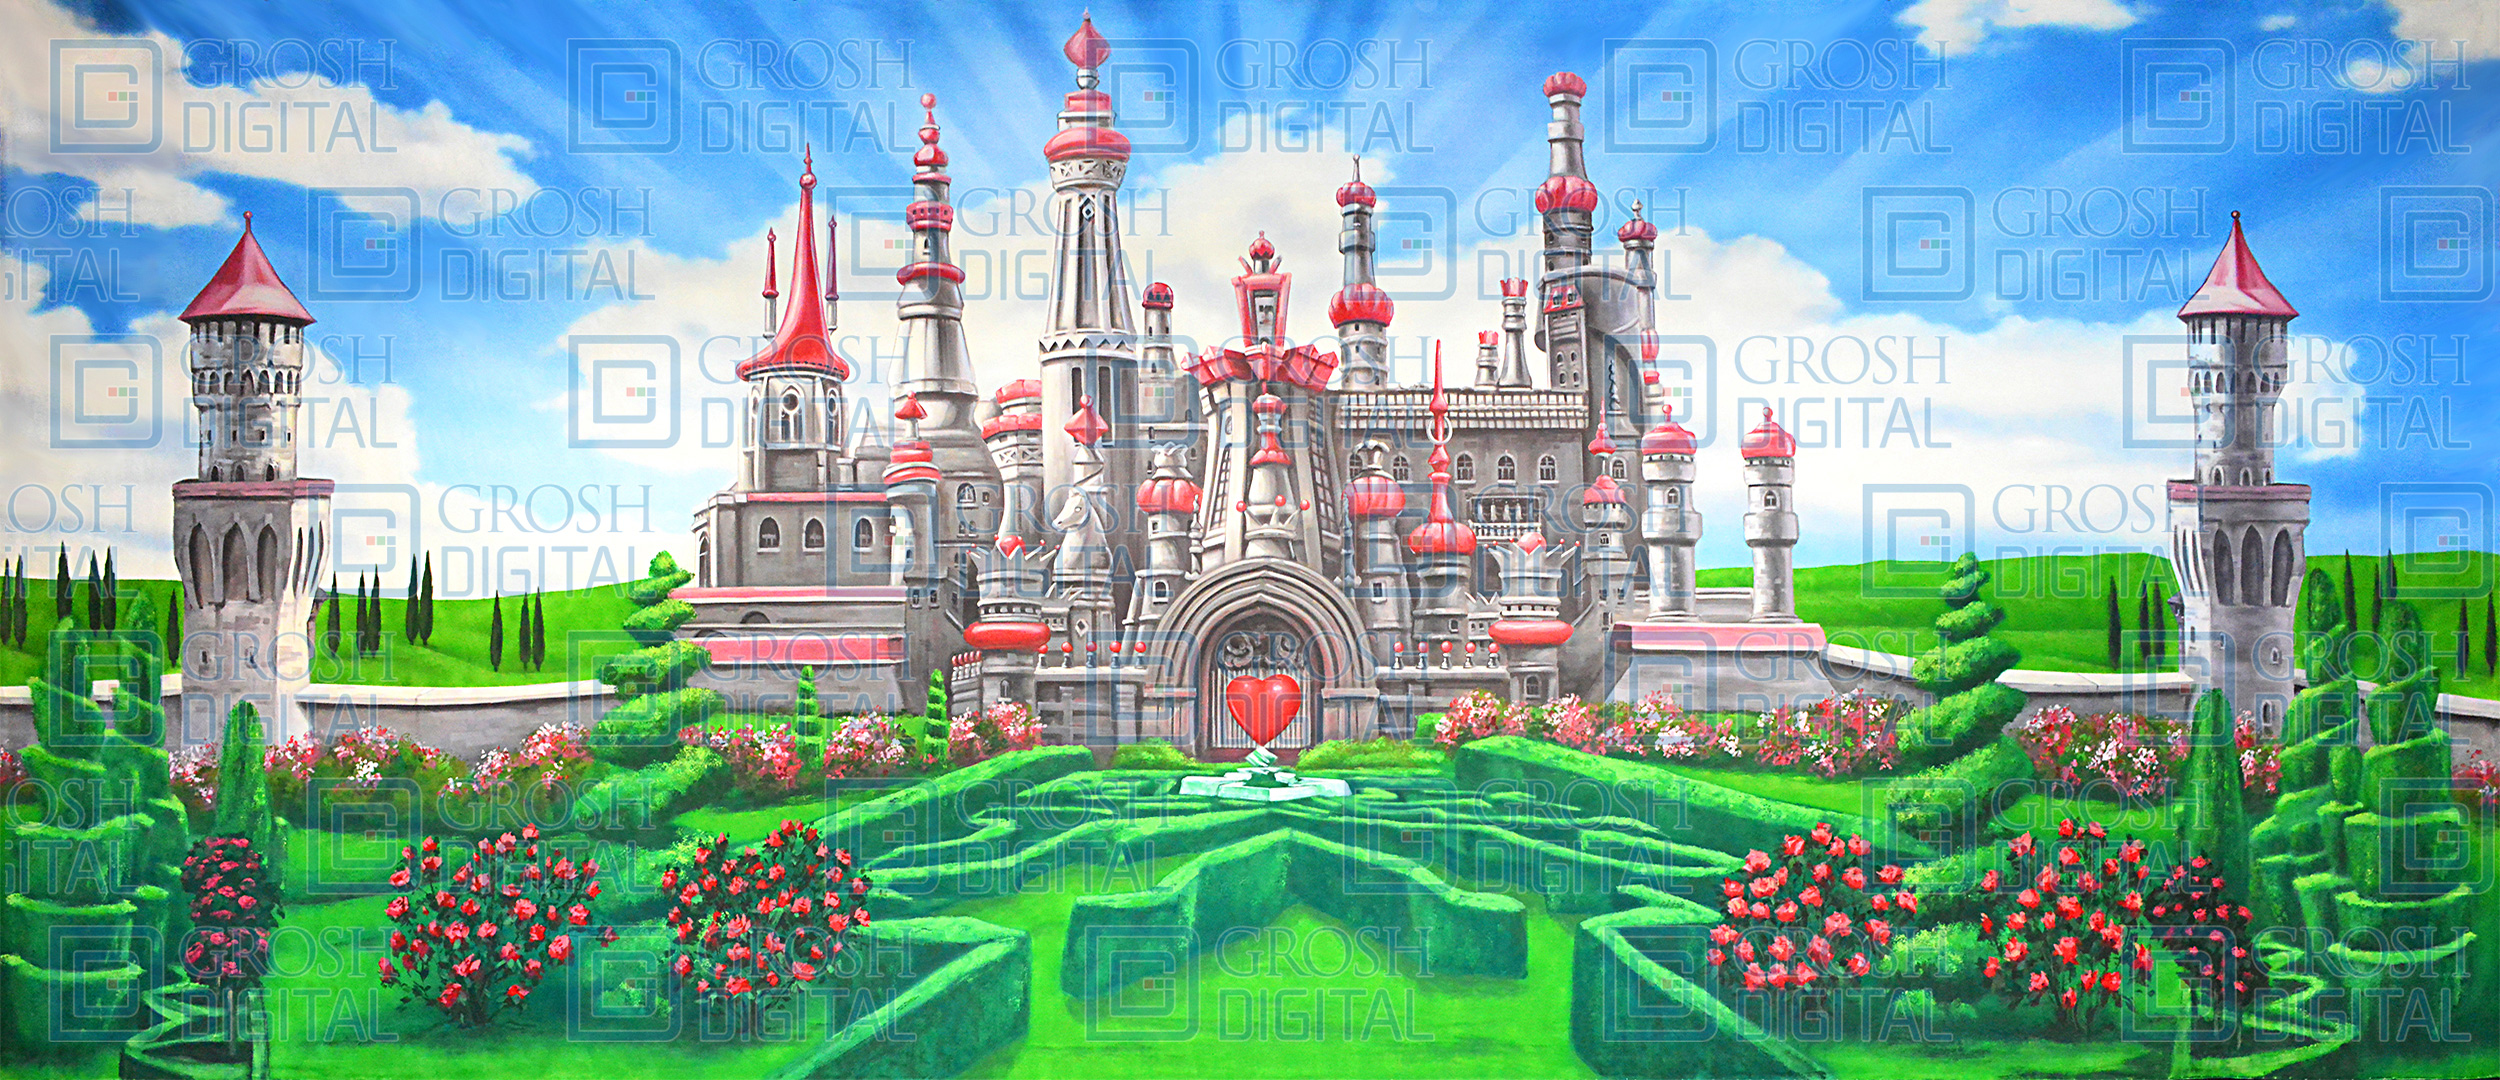 Queen of Hearts Projected Backdrop for Alice in Wonderland, Gardens